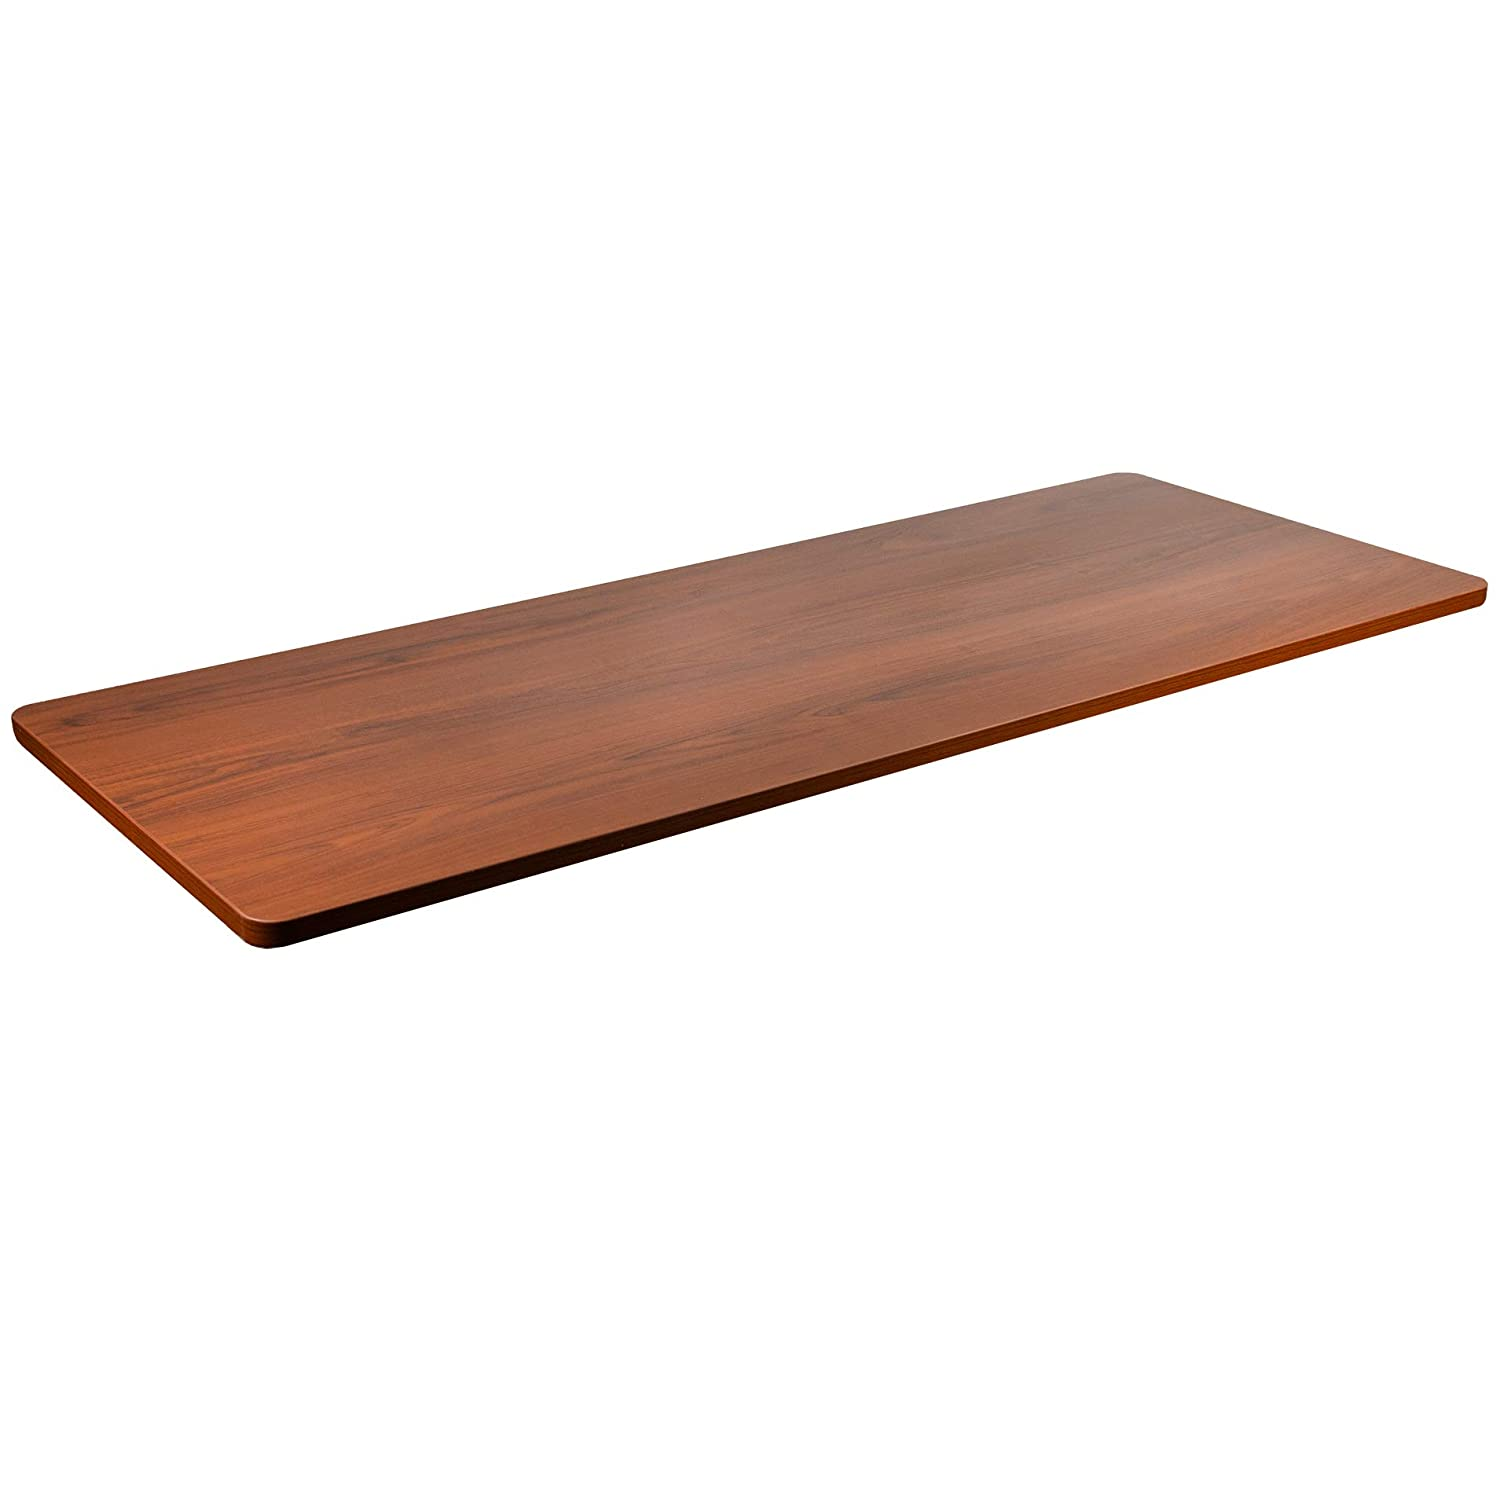 VIVO Dark Walnut 60 x 24 inch Universal Table Top for Standard and Sit to Stand Height Adjustable Home and Office Desk Frames (DESK-TOP60D)